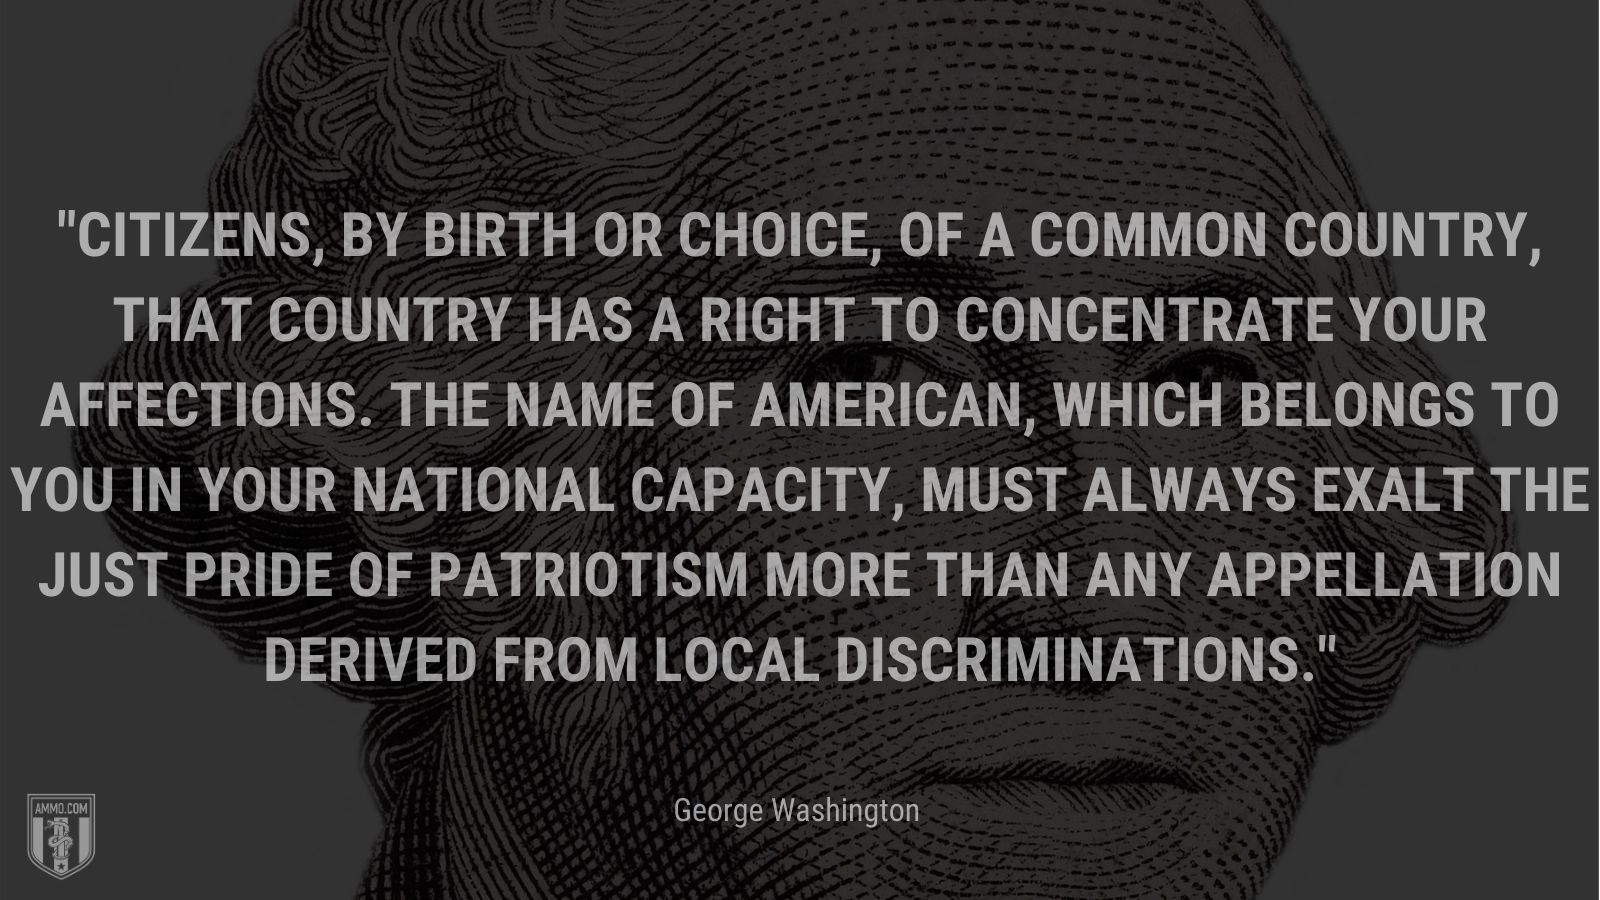 """""""Citizens, by birth or choice, of a common country, that country has a right to concentrate your affections. The name of American, which belongs to you in your national capacity, must always exalt the just pride of patriotism more than any appellation derived from local discriminations."""" - George Washington"""